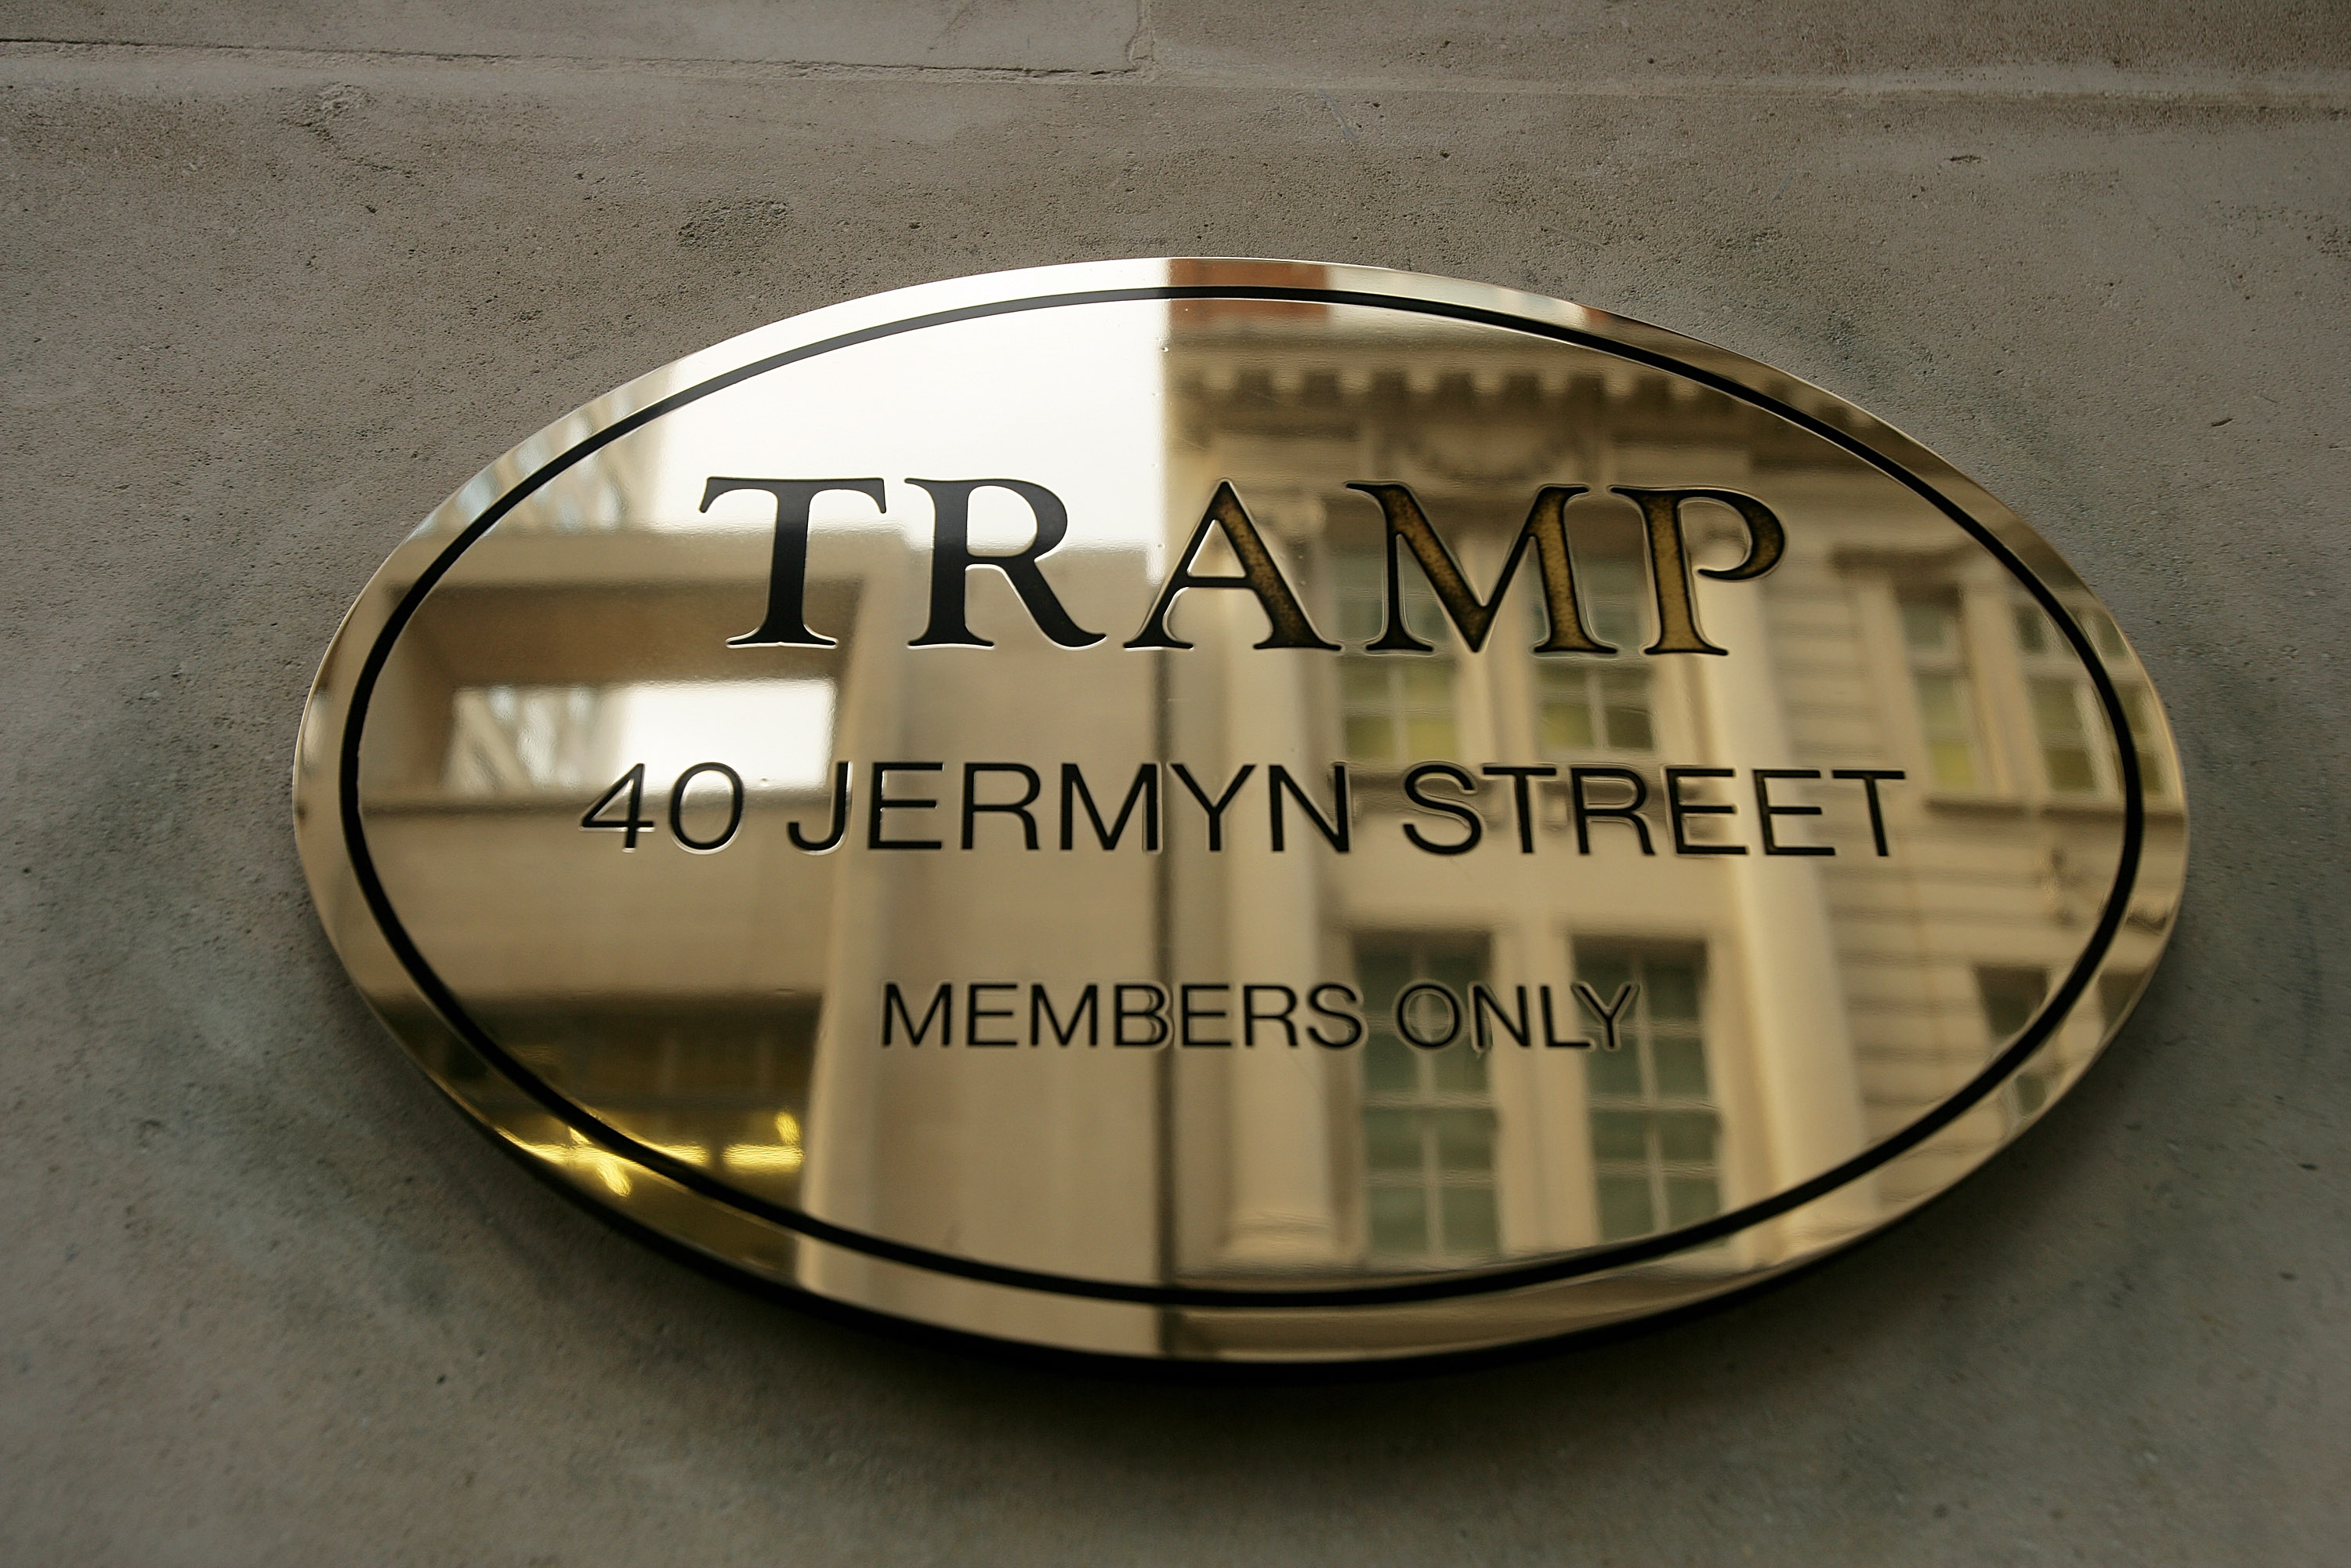 The venue name is displayed on the exterior of Tramp, Jermyn Street on April 4, 2007 in London, England.